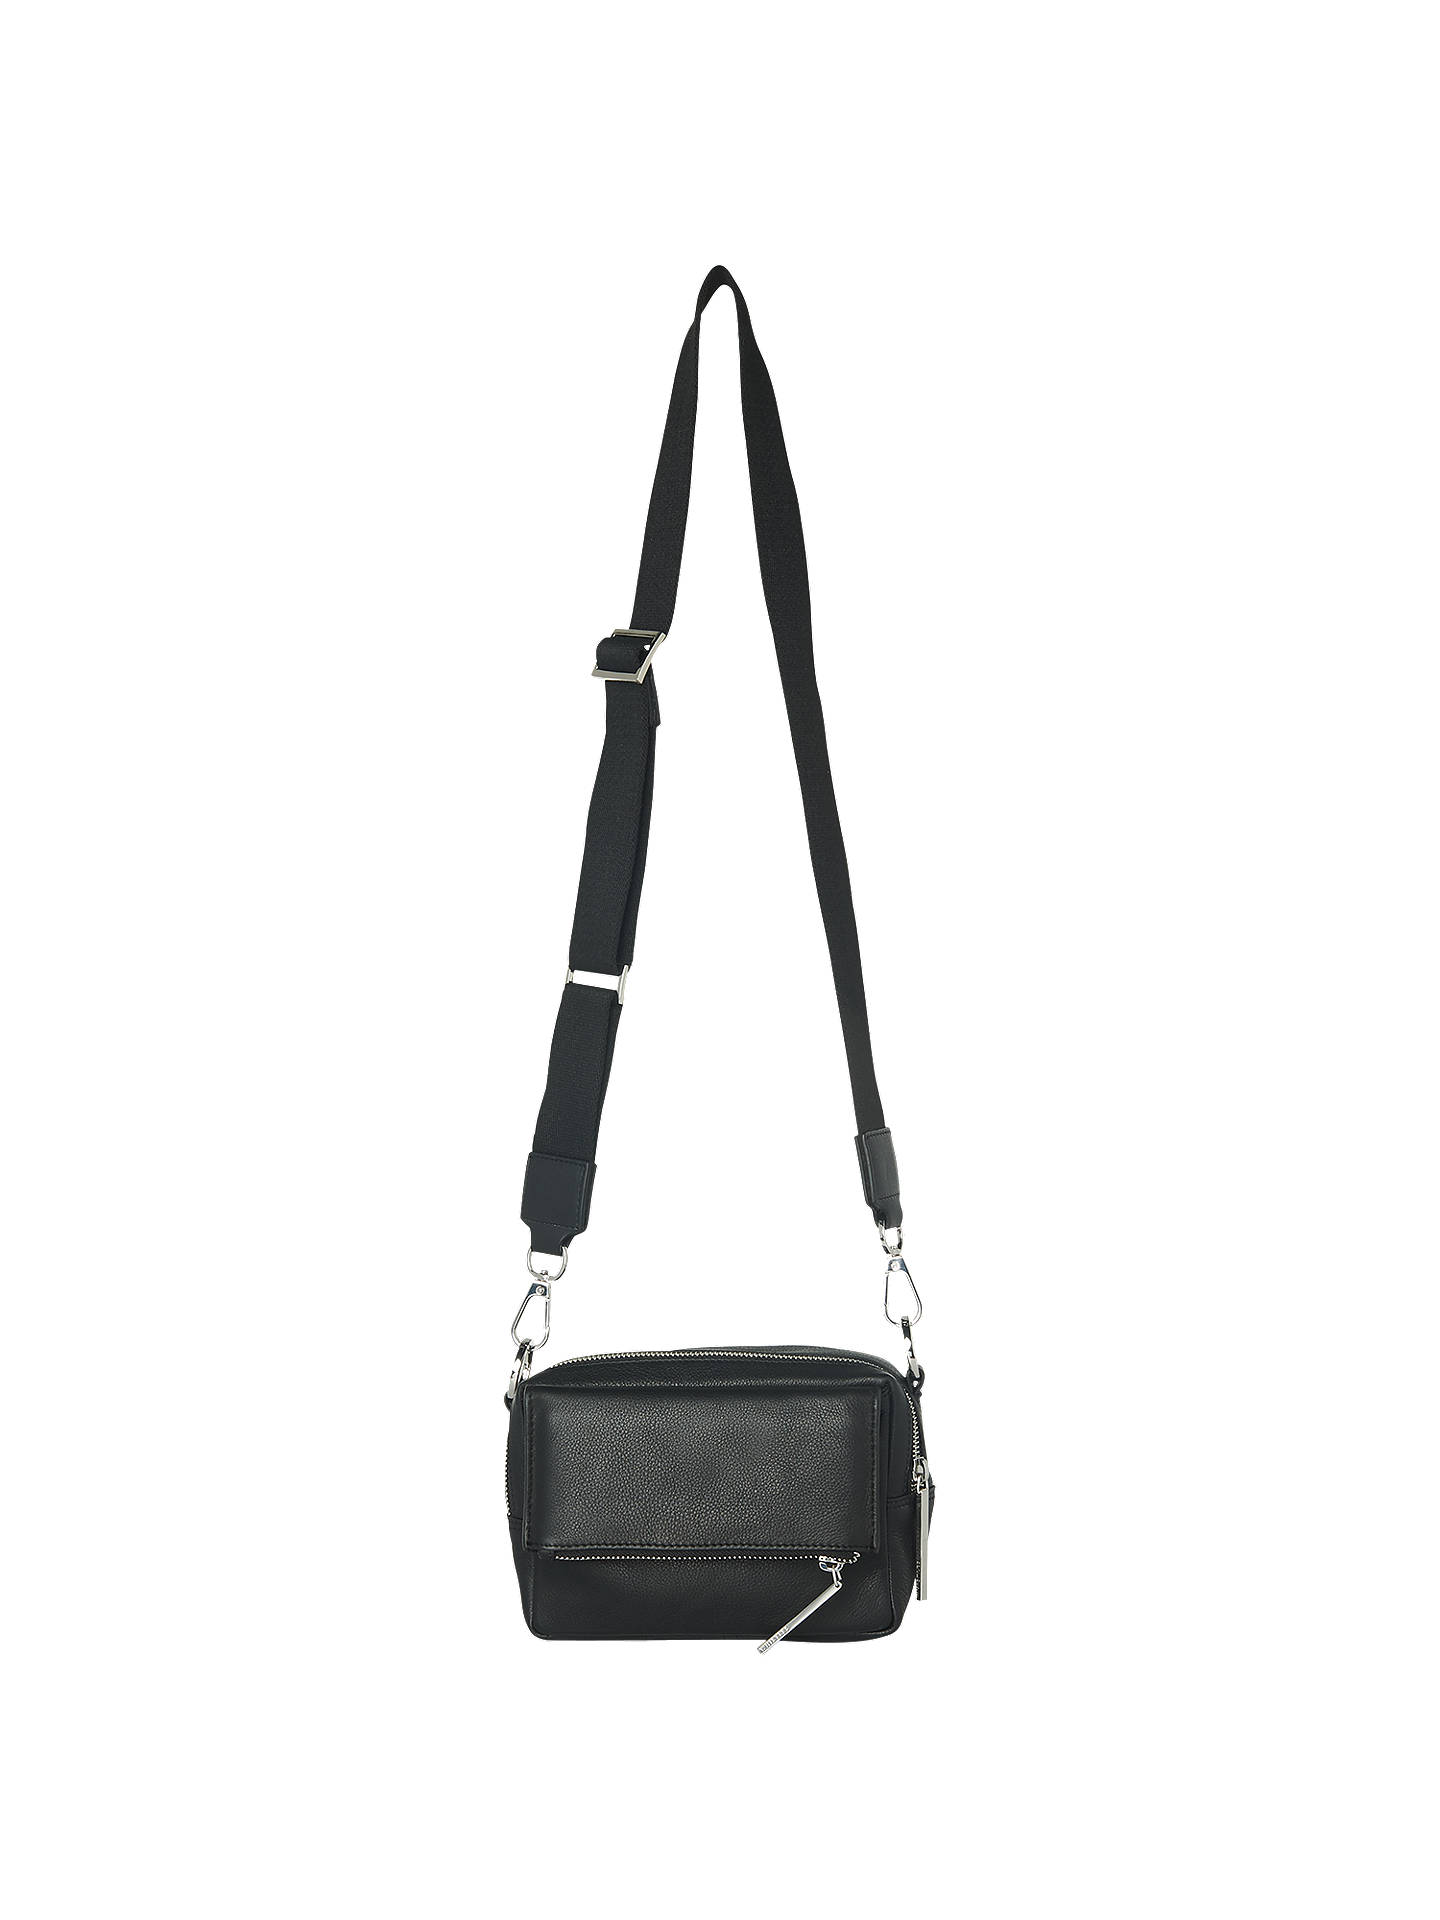 BuyWhistles Bibi Leather Cross Body Bag 63cf59d0070d6